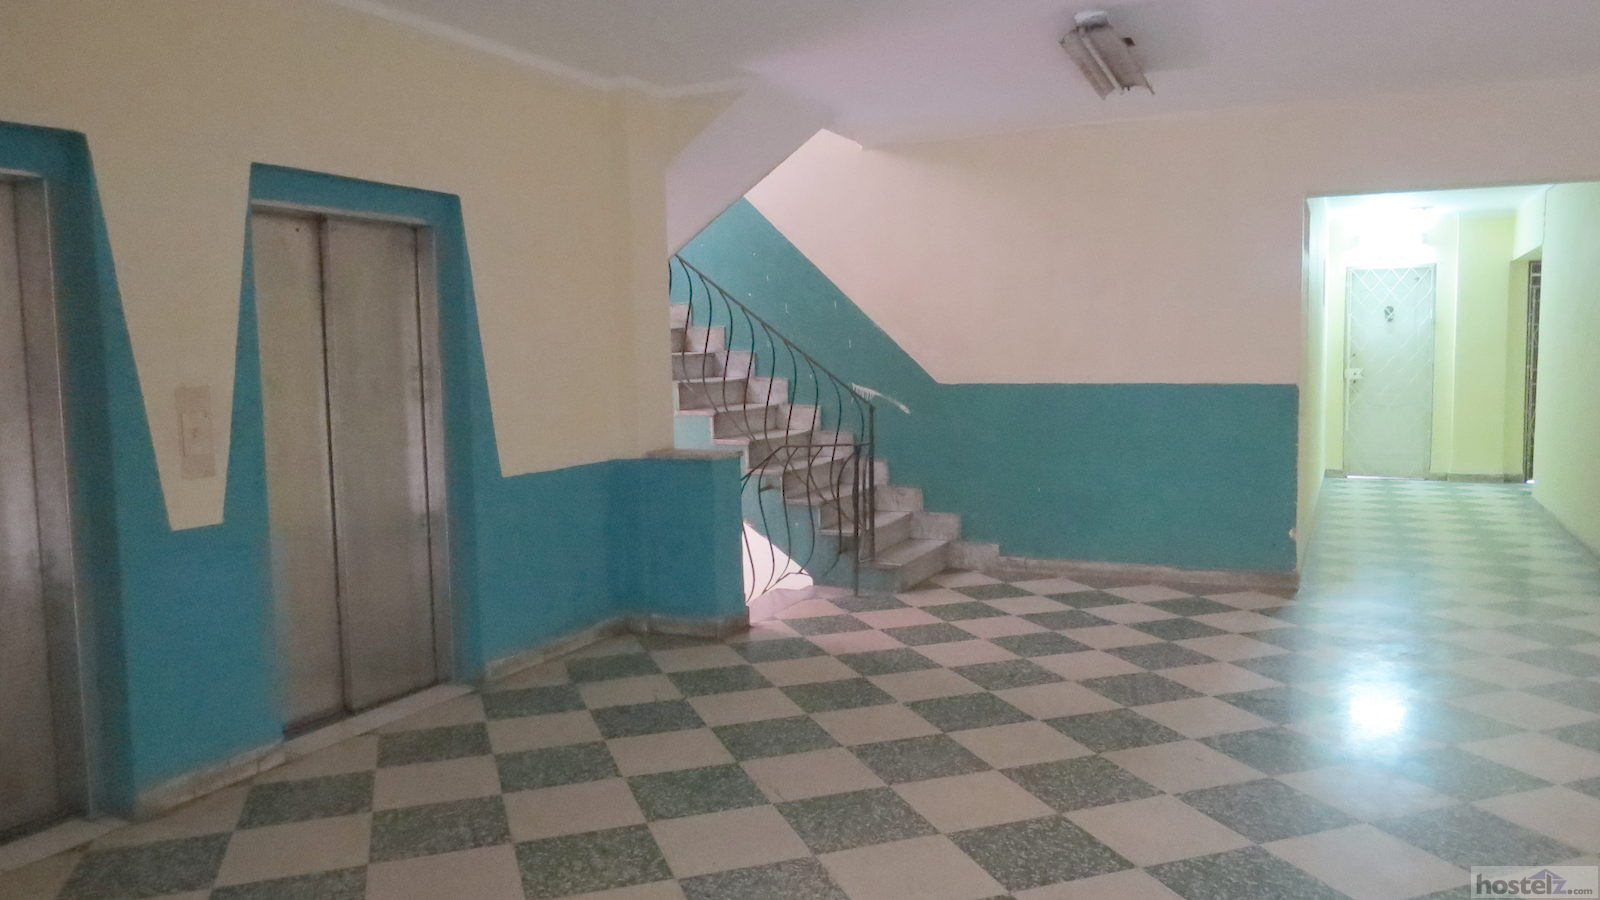 Hallway From Lifts to Hostel Door